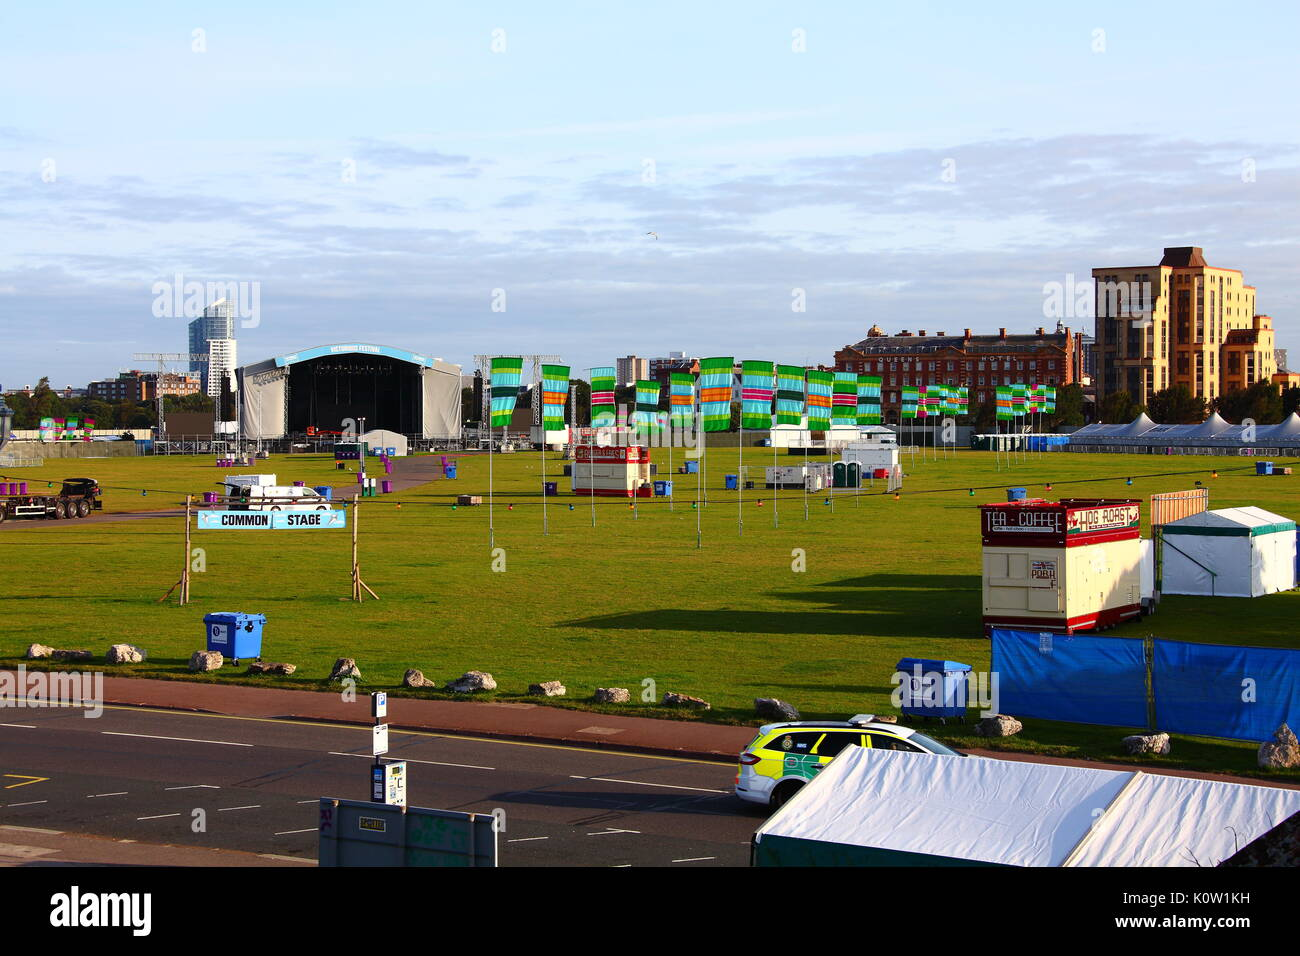 Southsea, UK. 24th August, 2017. Victorious Festival in Southsea August Bank Holiday Weekend 2017 Credit: FSM Photography/Alamy Stock Photo